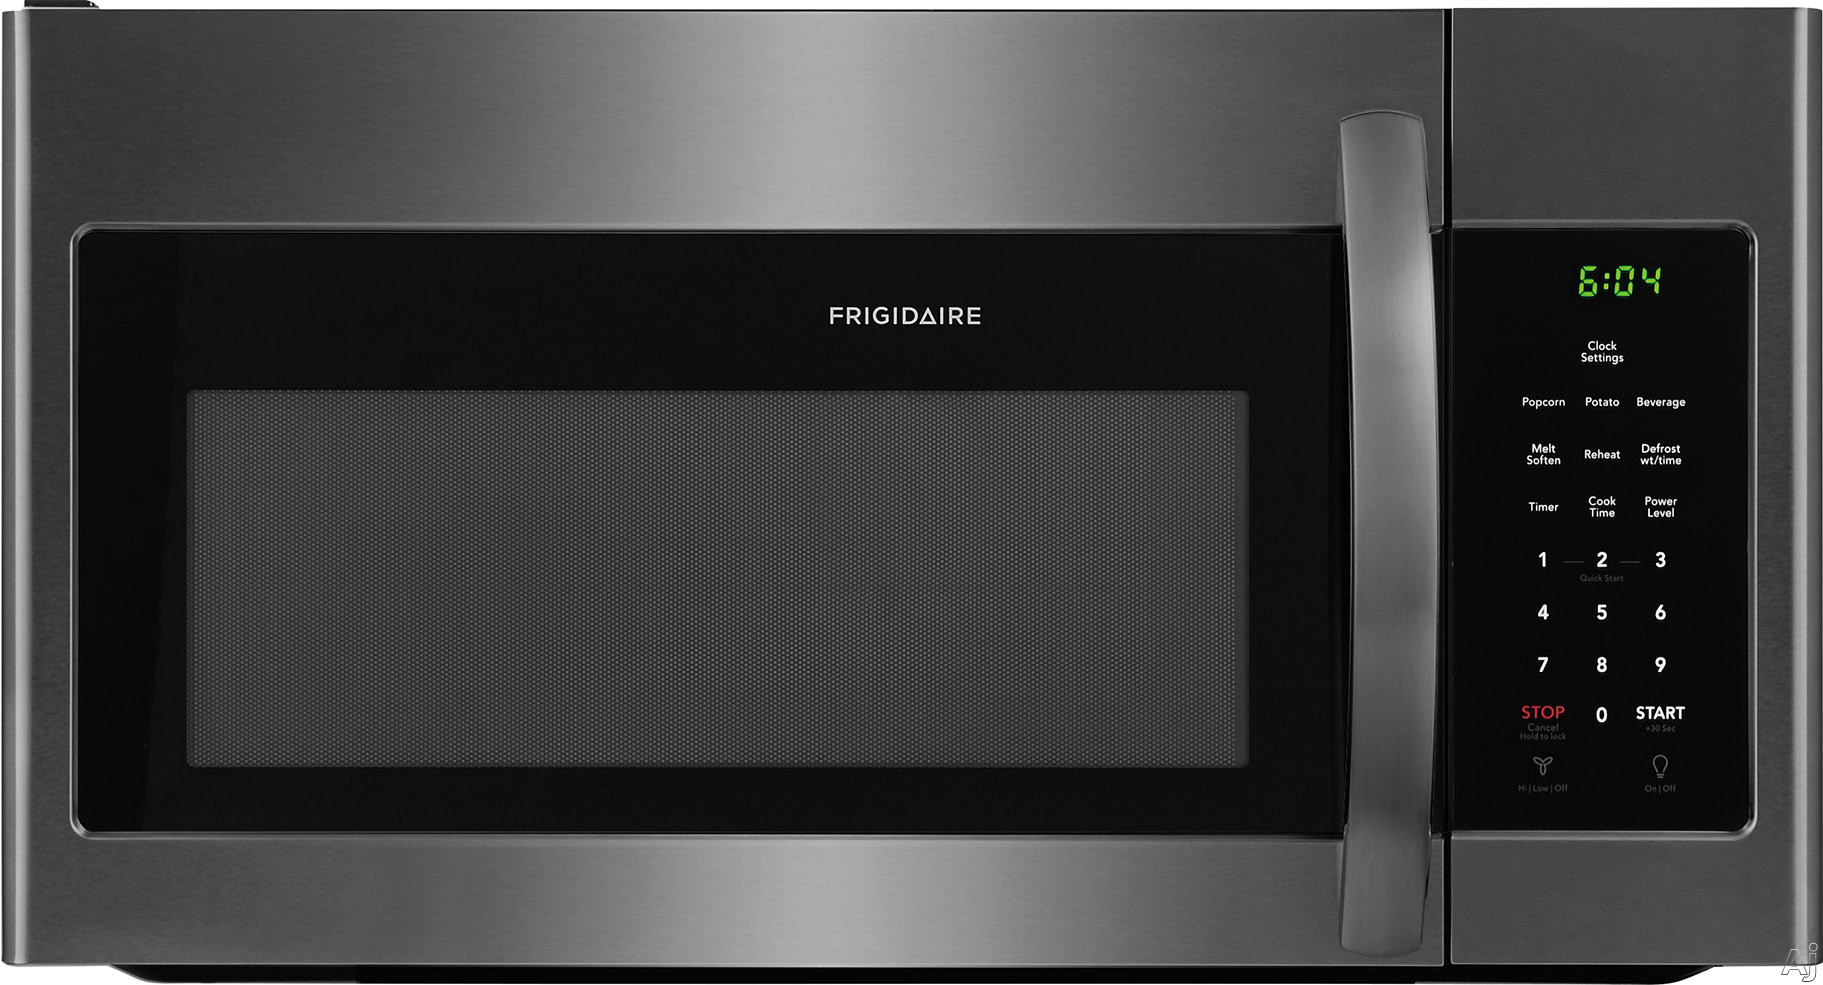 Frigidaire FFMV1645TD 1.6 Cu. Ft. Over-The-Range Black Stainless Microwave FFMV1645TD